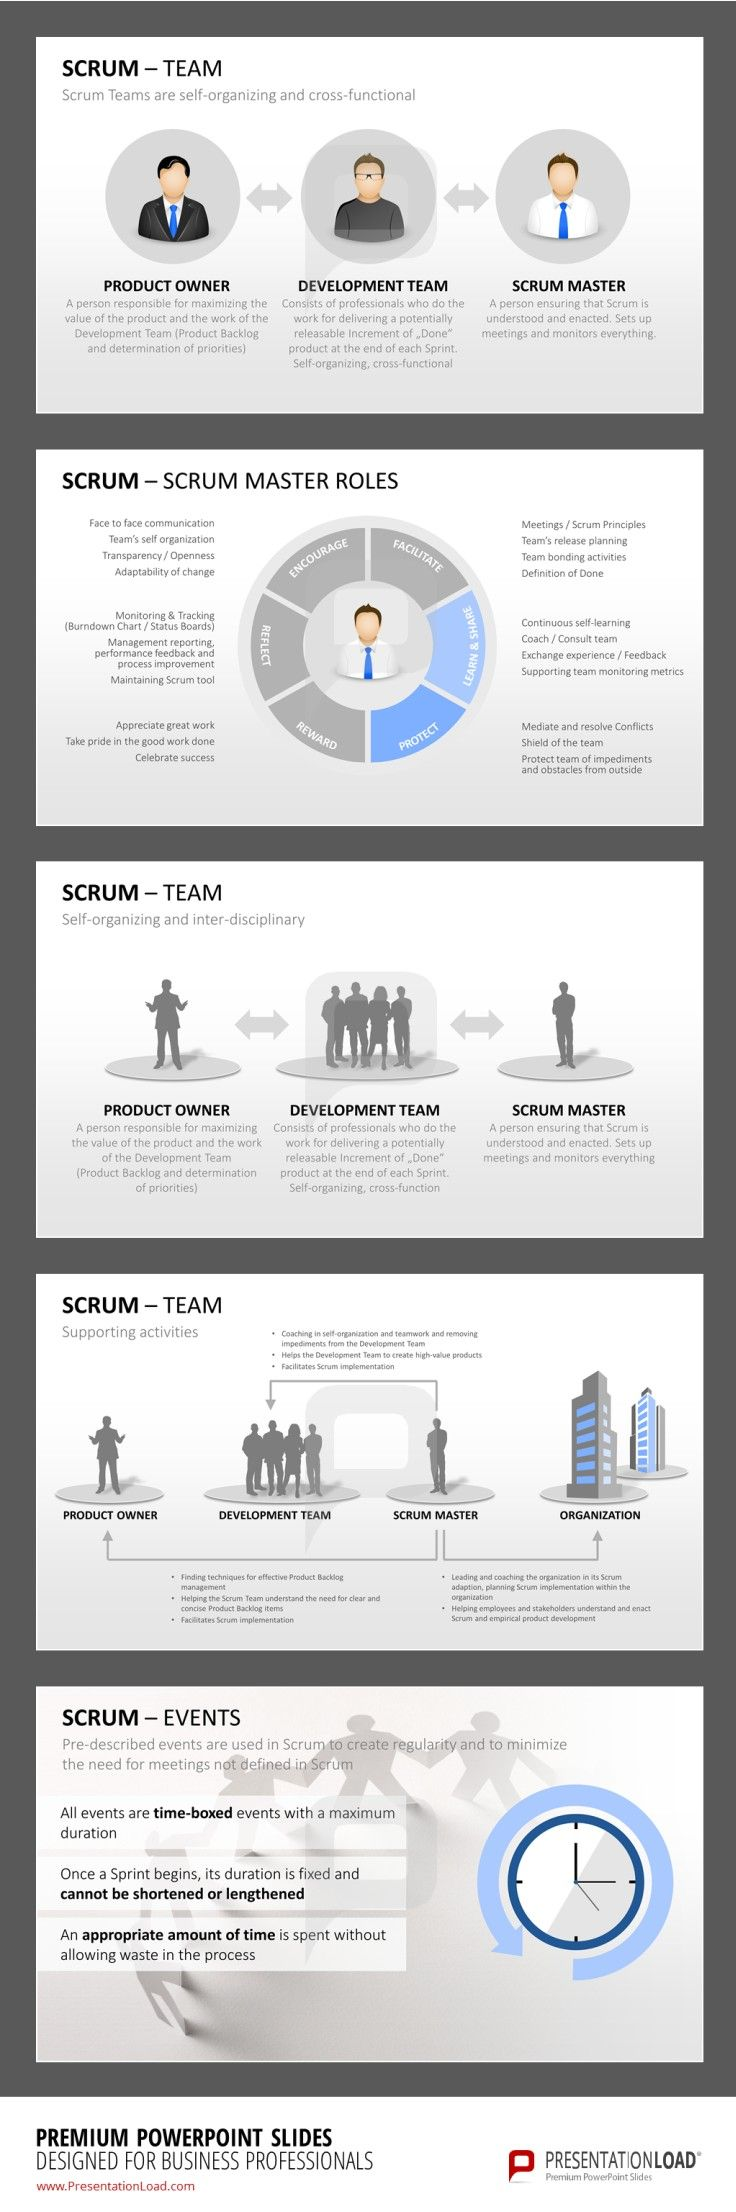 Delighted 1 Page Resume Templates Tiny 1 Year Experience Resume Format For Manual Testing Flat 10 Tips For Writing A Good Resume 10 Words Not To Put On Your Resume Old 2 Circle Template Coloured2 Inch Button Template Scrum Project Management PowerPoint Templates #presentationload ..